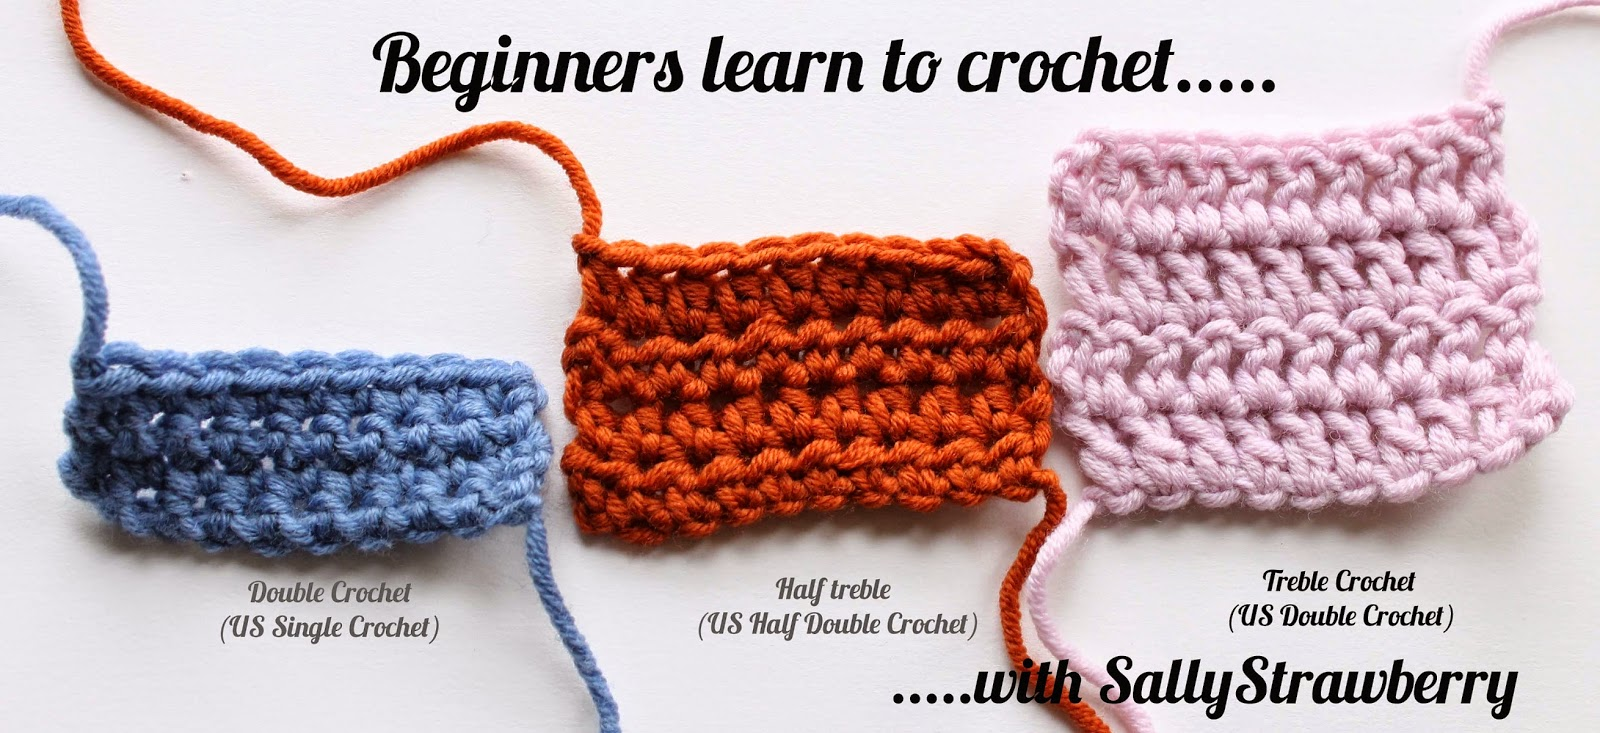 Beginners+Learn+to+Crochet-+treble+Crochet+title+page.jpg